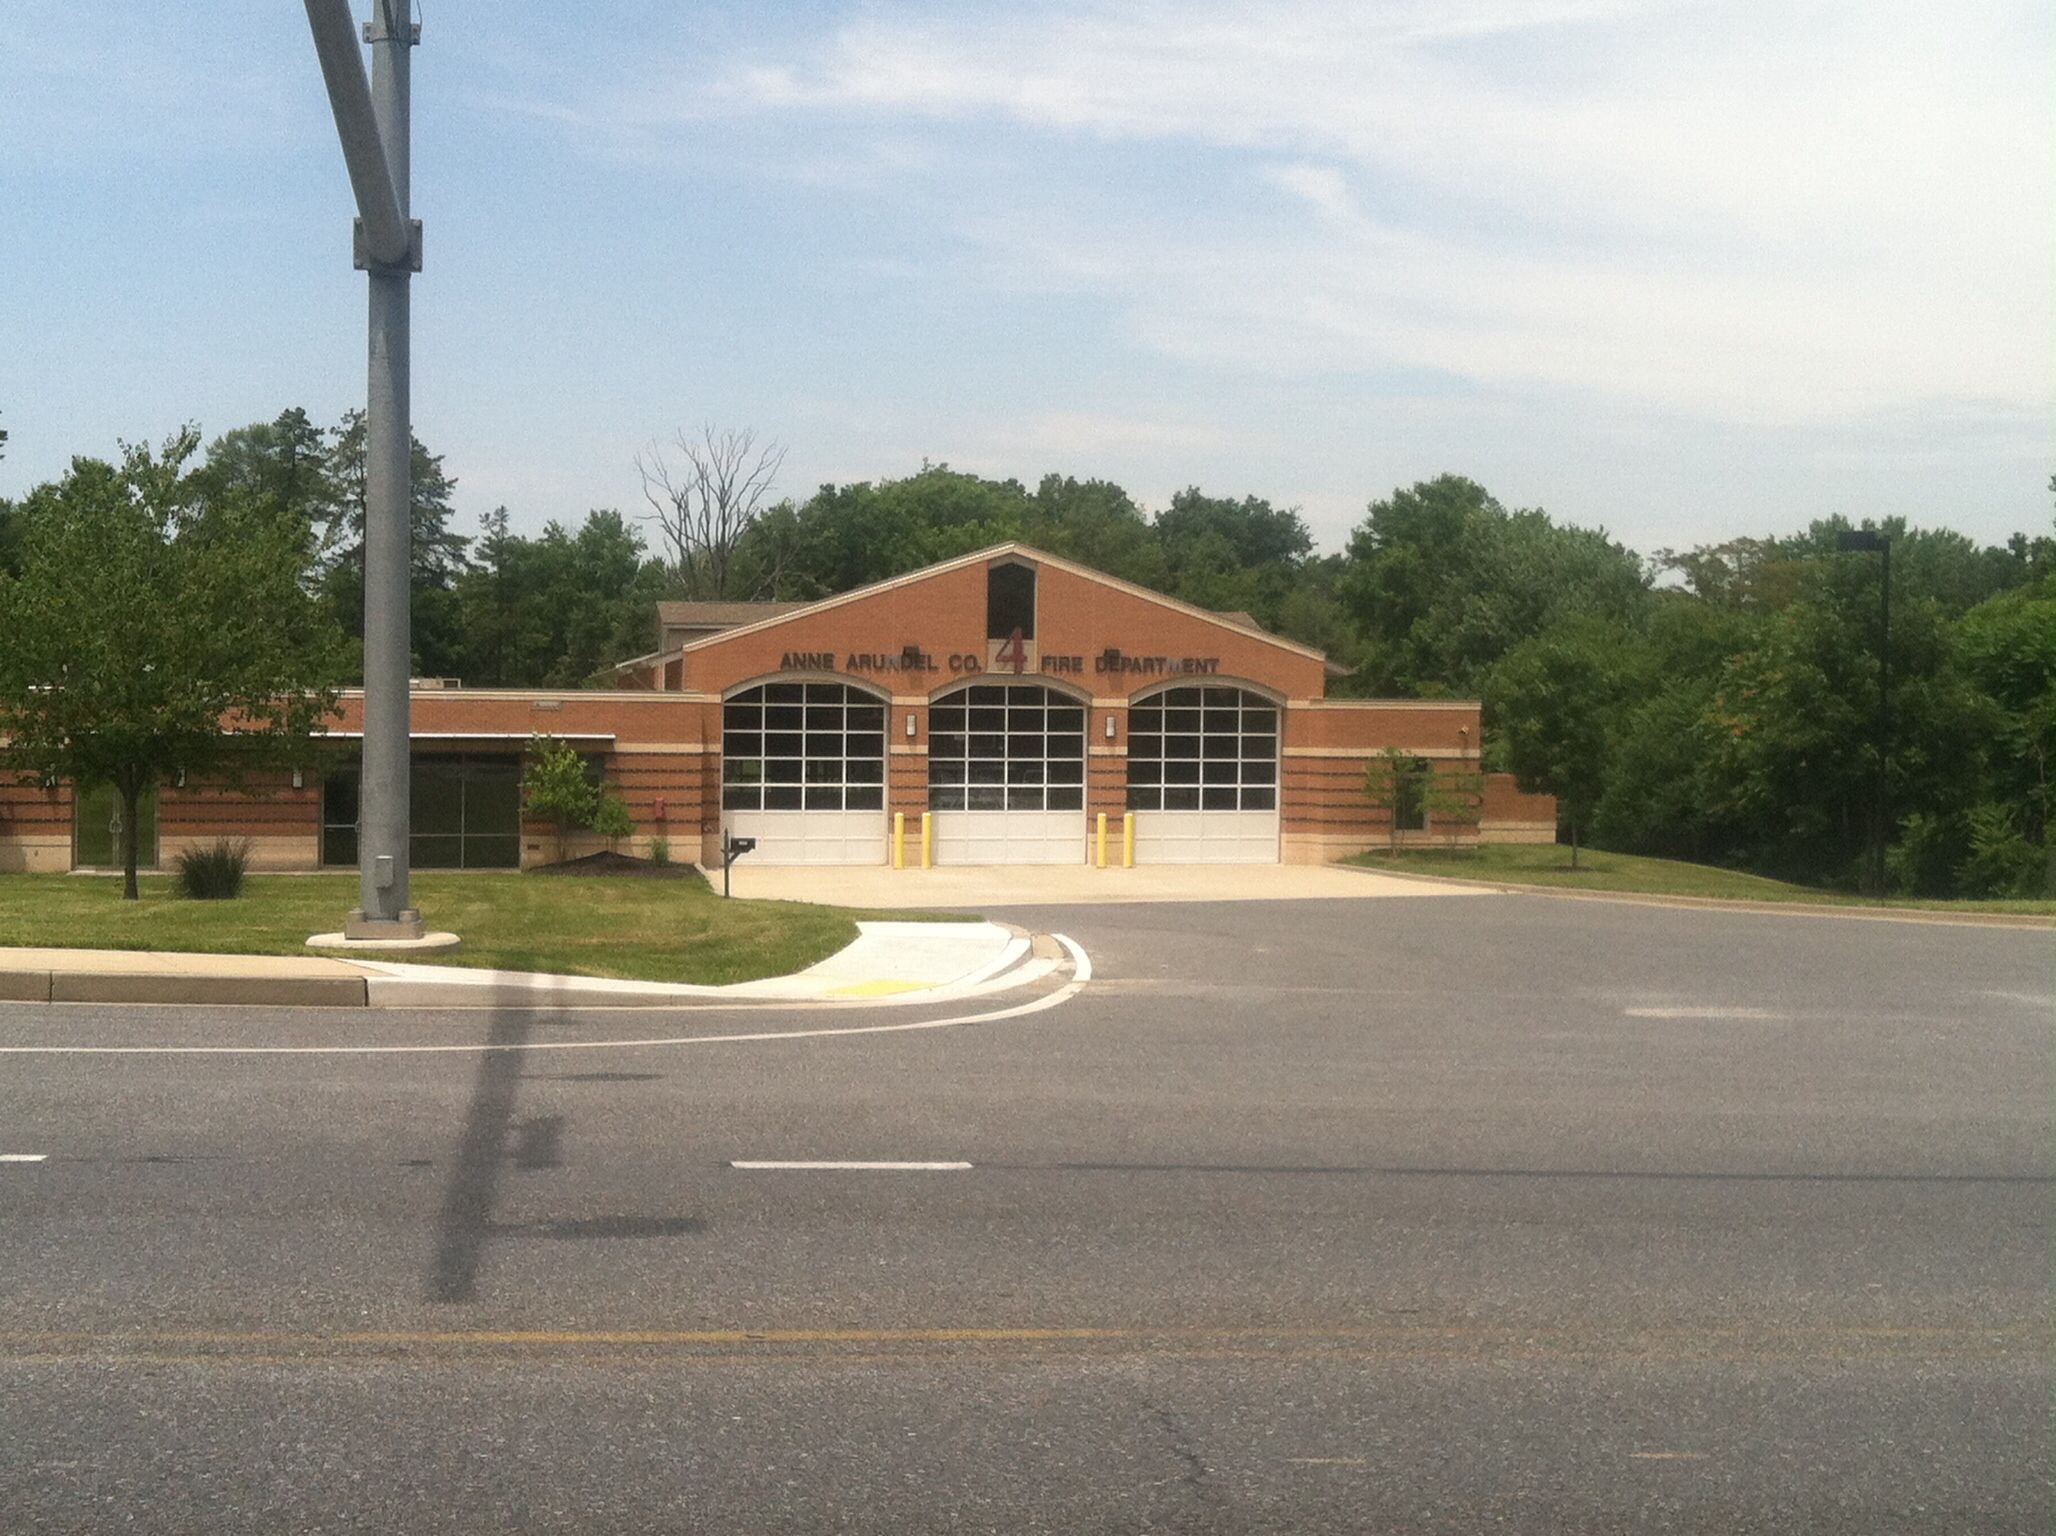 Anne Arundel County Station 4 Severn Maryland